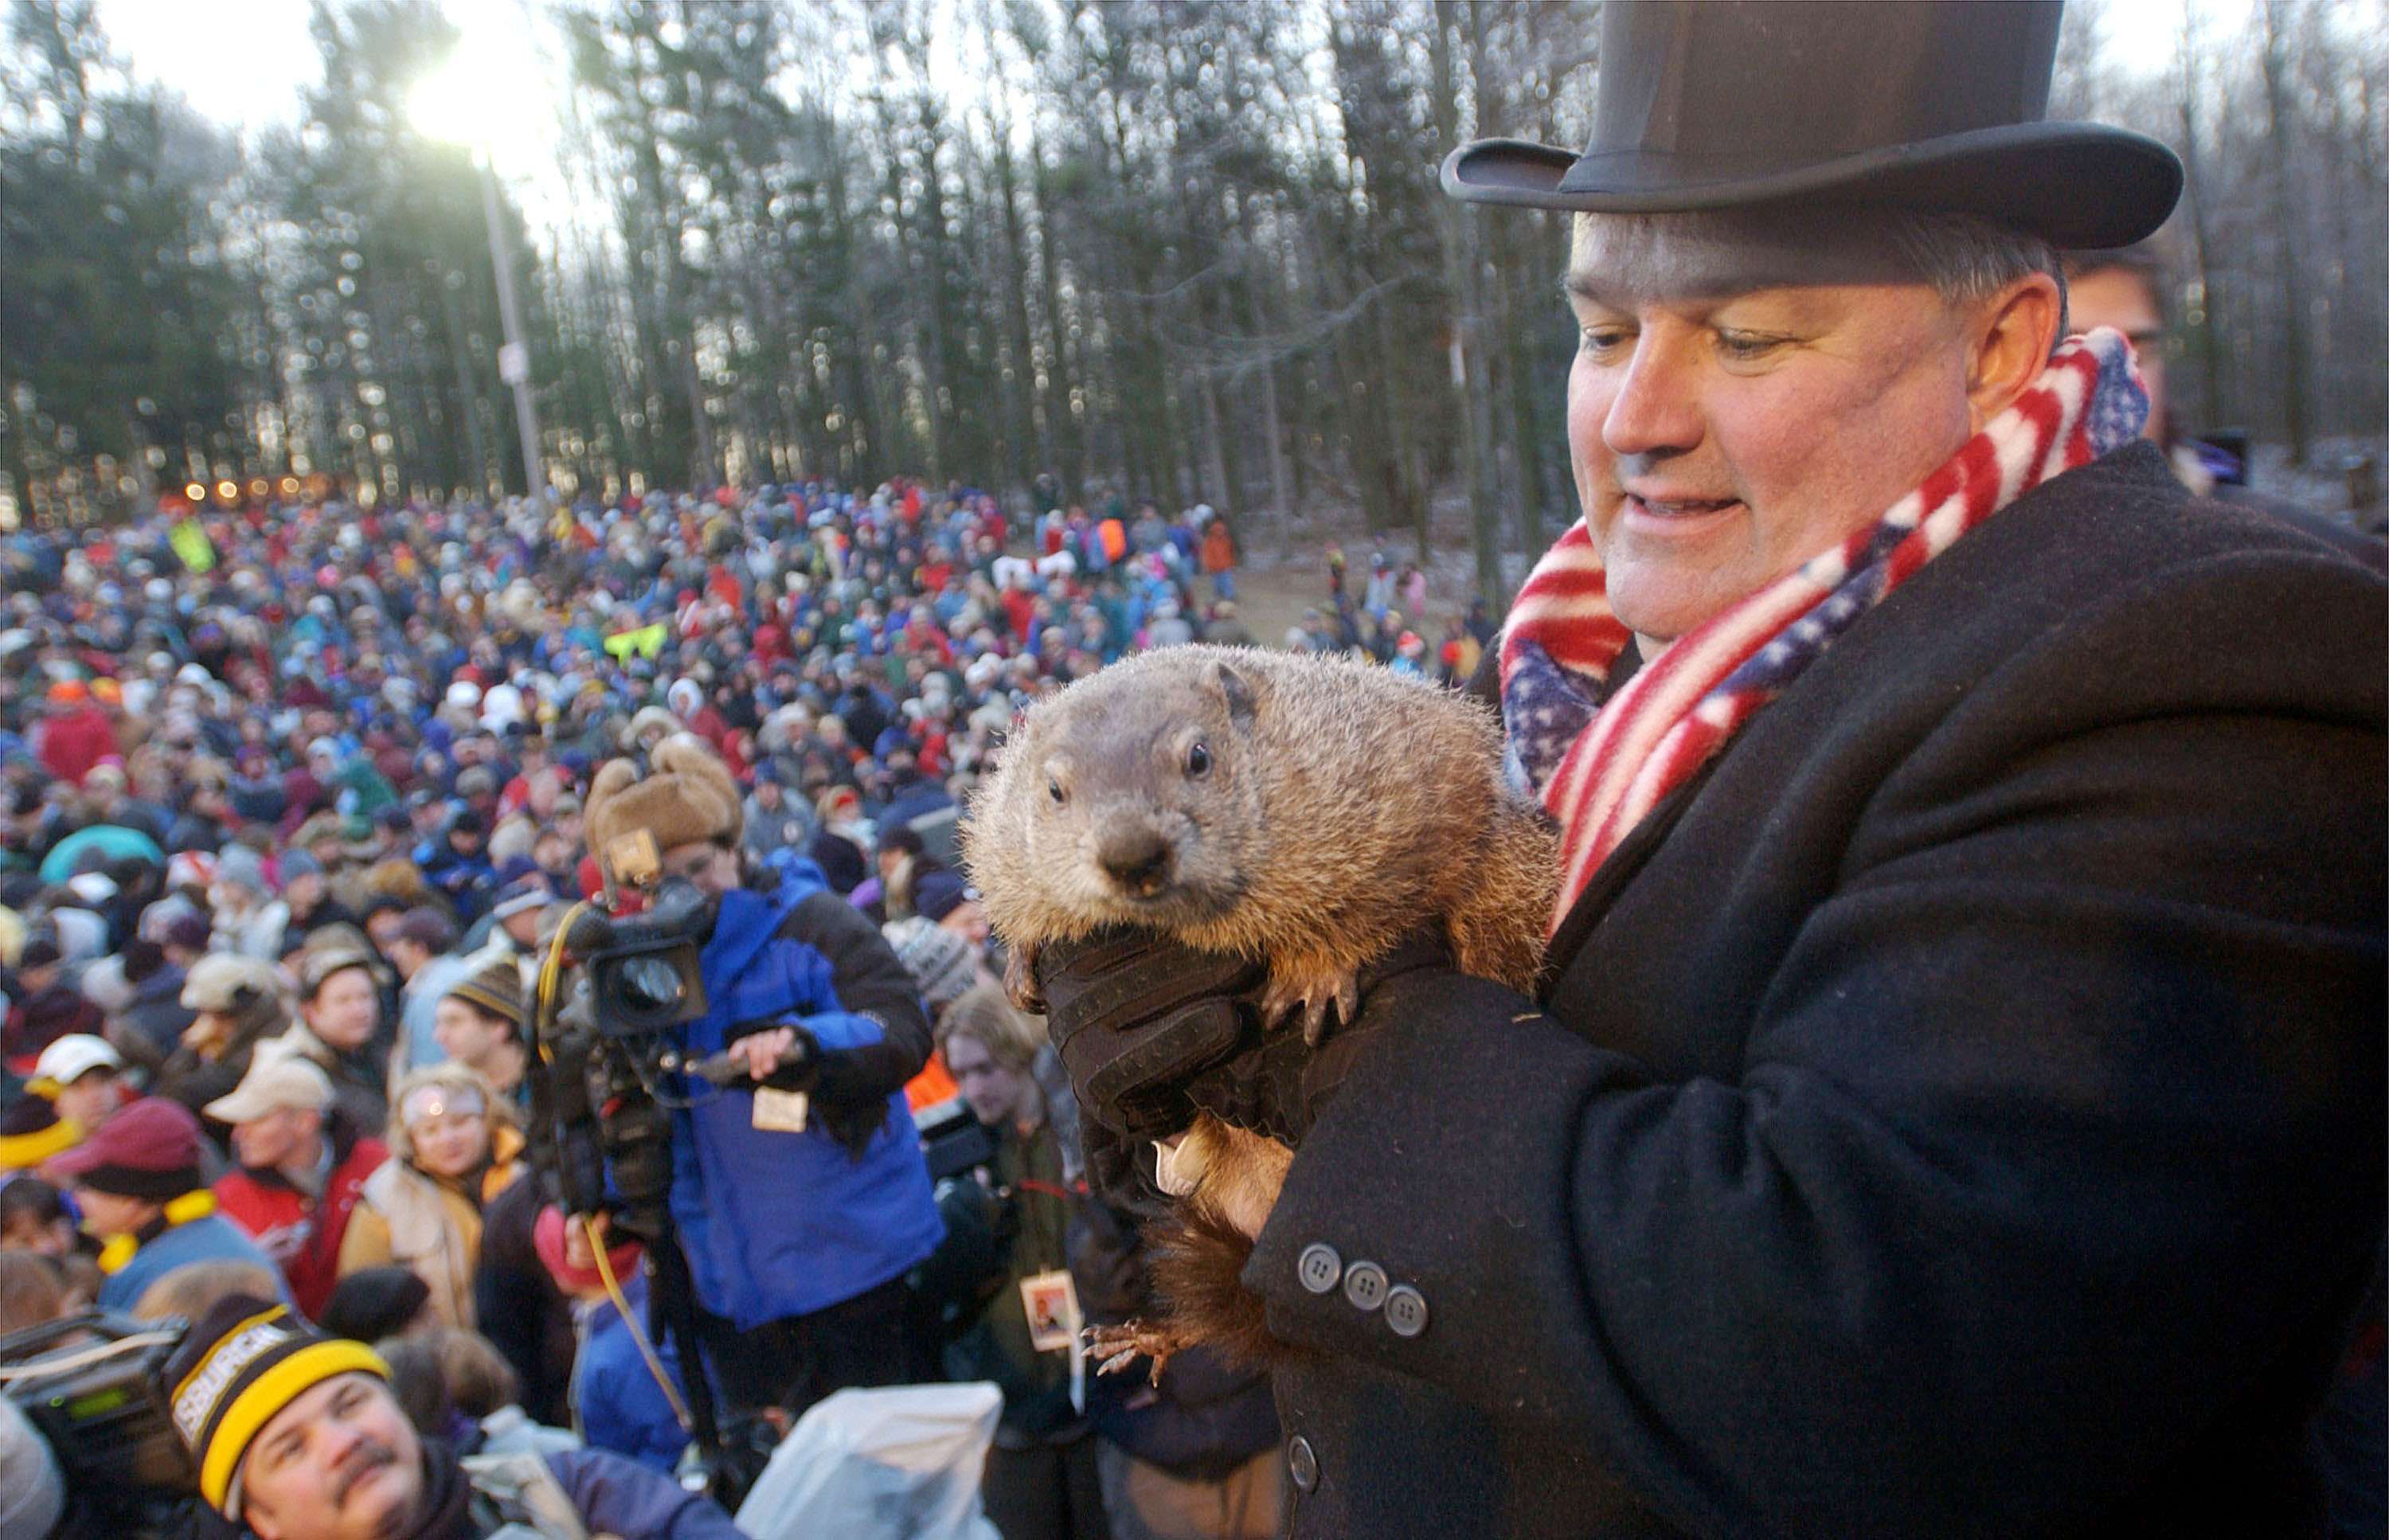 Groundhog Day: How accurate is Punxsutawney Phil?